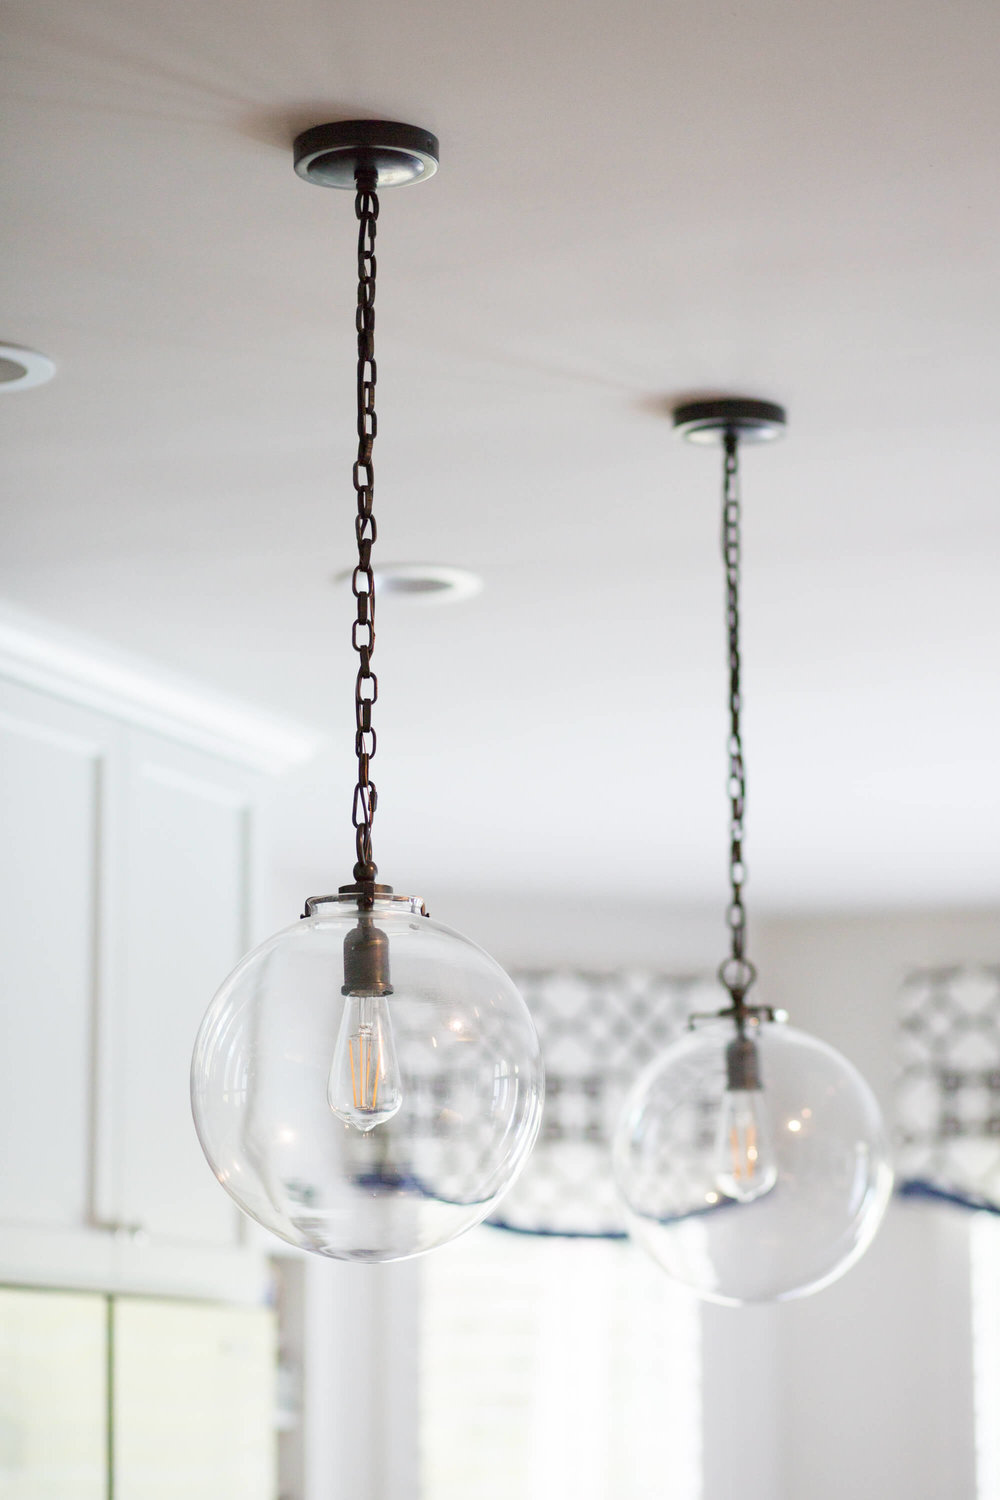 Circa Lighting Katie Pendants - Before and After Kitchen Remodel, Carla Aston - Designer, Tori Aston - Photographer